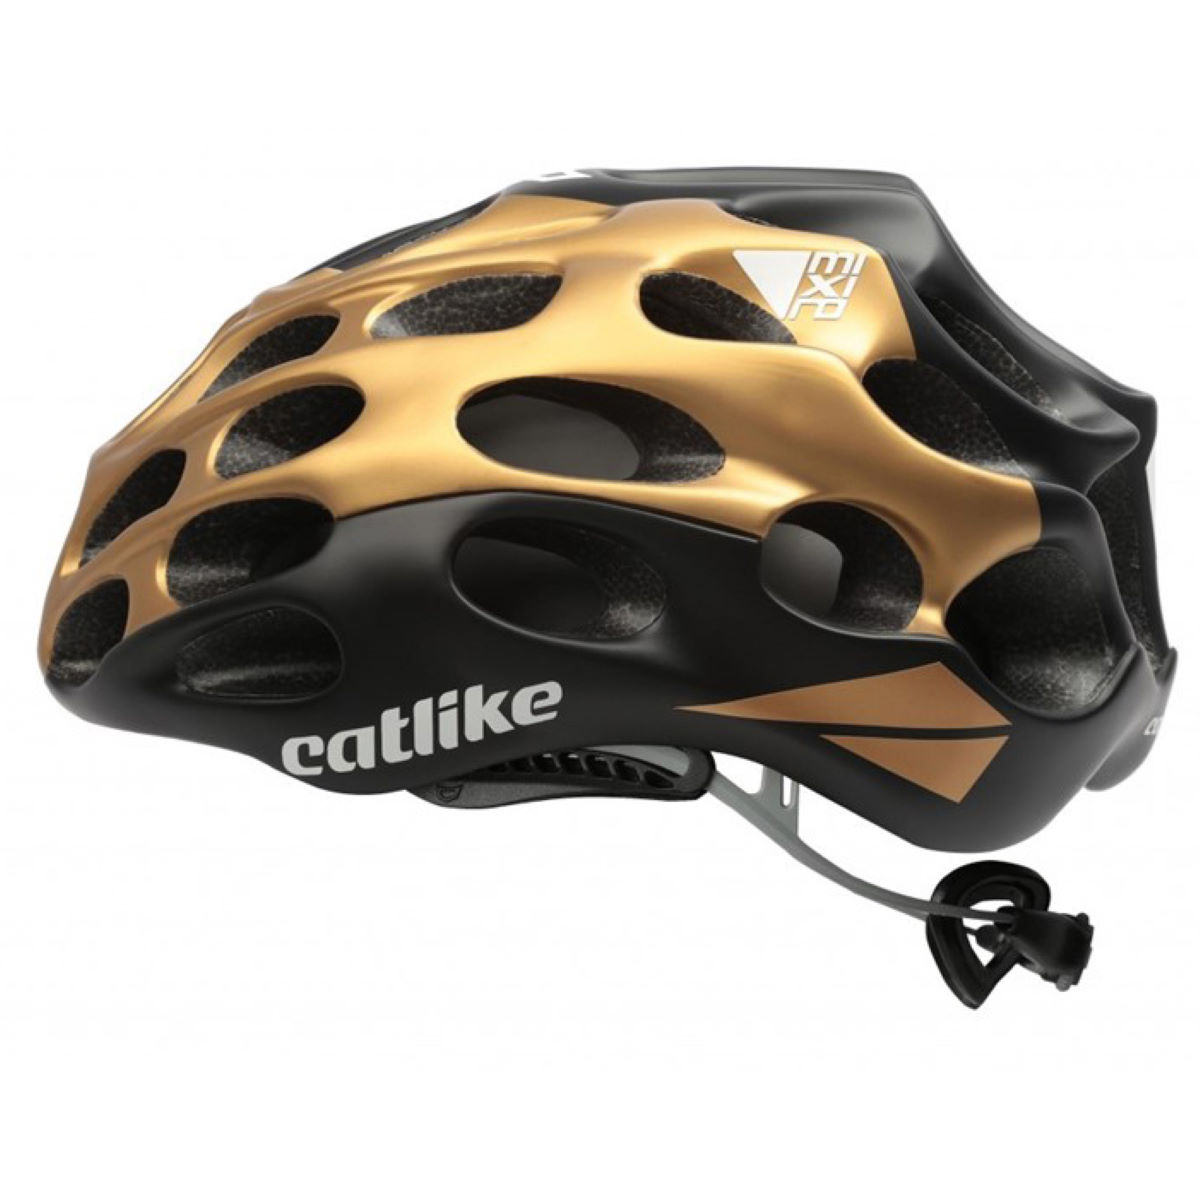 Casque de route Catlike Mixino - S Black/Gold/Black Casques de route